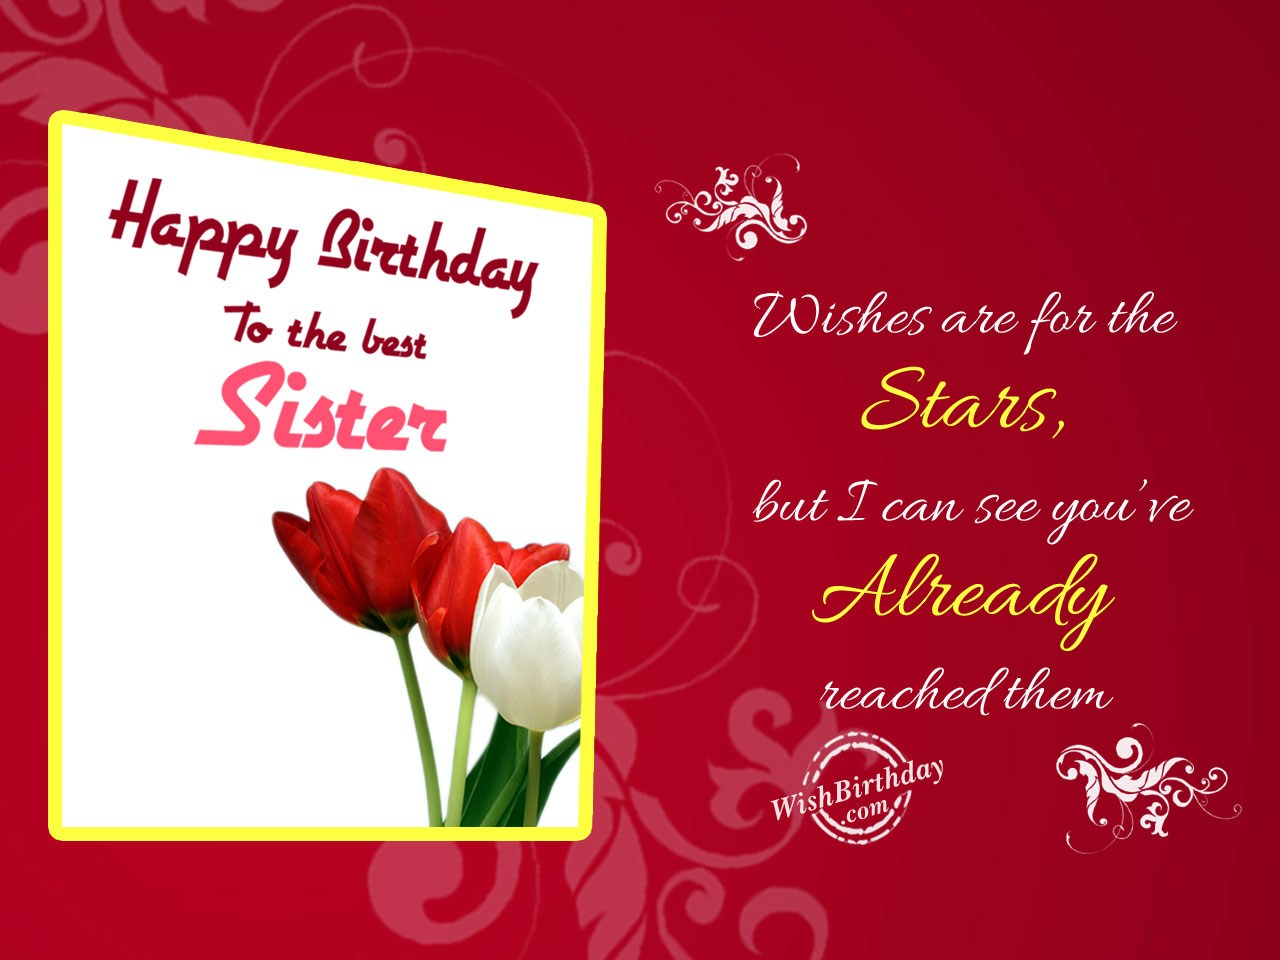 birthday message for sister tagalog ; Birthday-Wishes-For-Sister-Abroad-With-Birthday-Greetings-For-Sister-Taglish-As-Well-As-Birthday-Greetings-For-Sister-N-Law